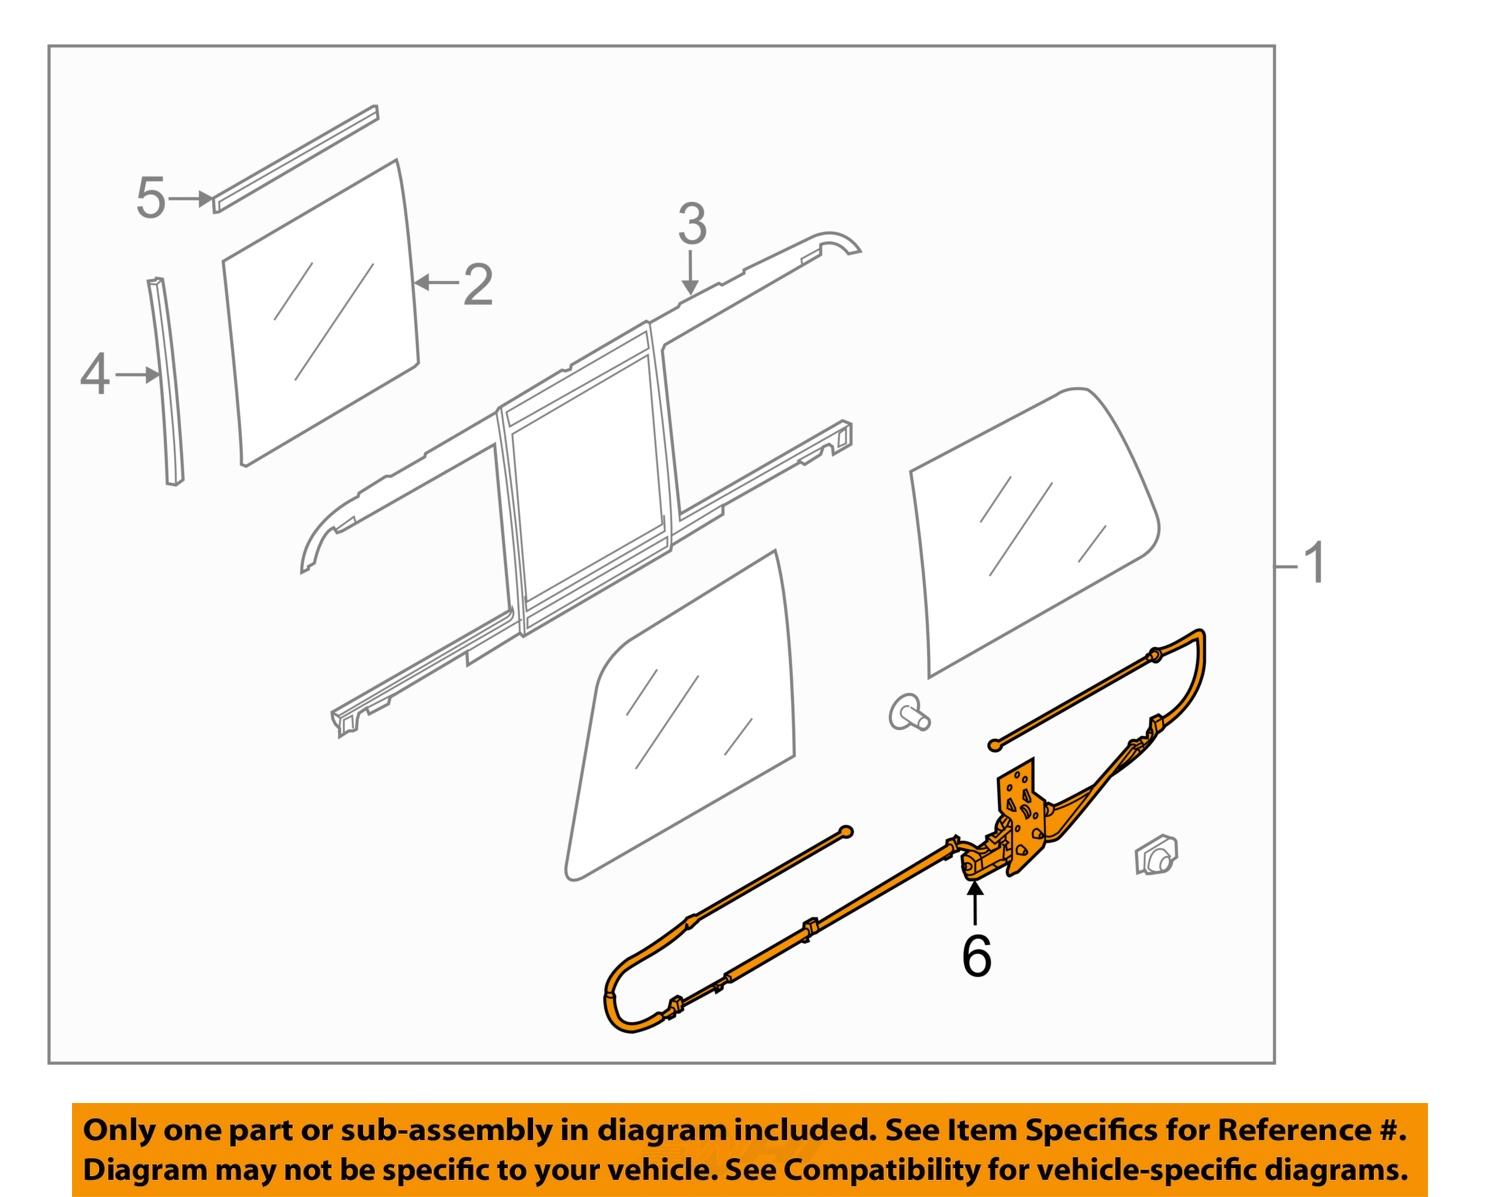 2001 ford f350 mirror wiring diagram 4 way pressure clamp system e 550 super duty parts free engine